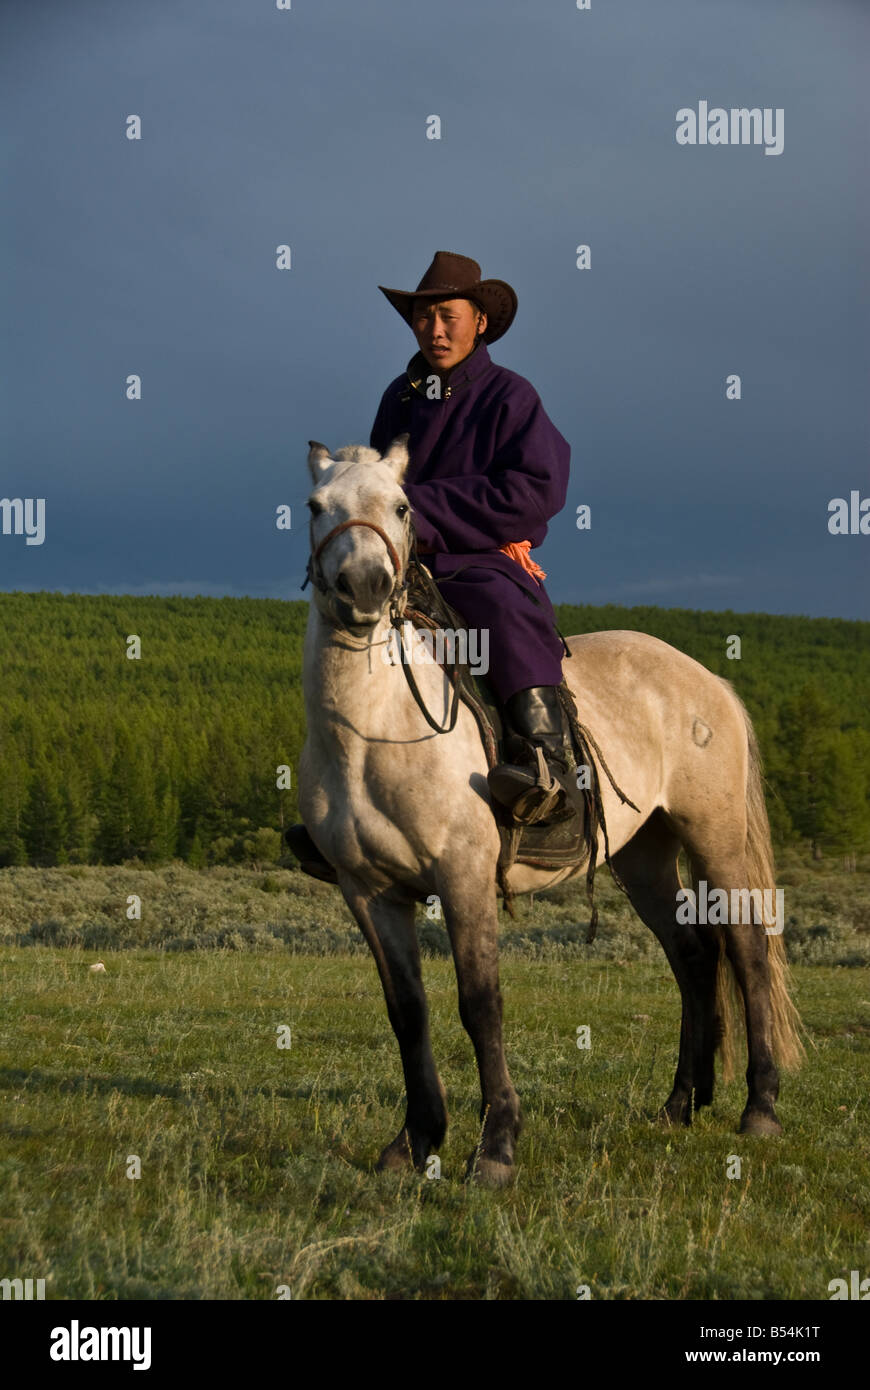 Nomad on a horse in Northern Mongolia - Stock Image